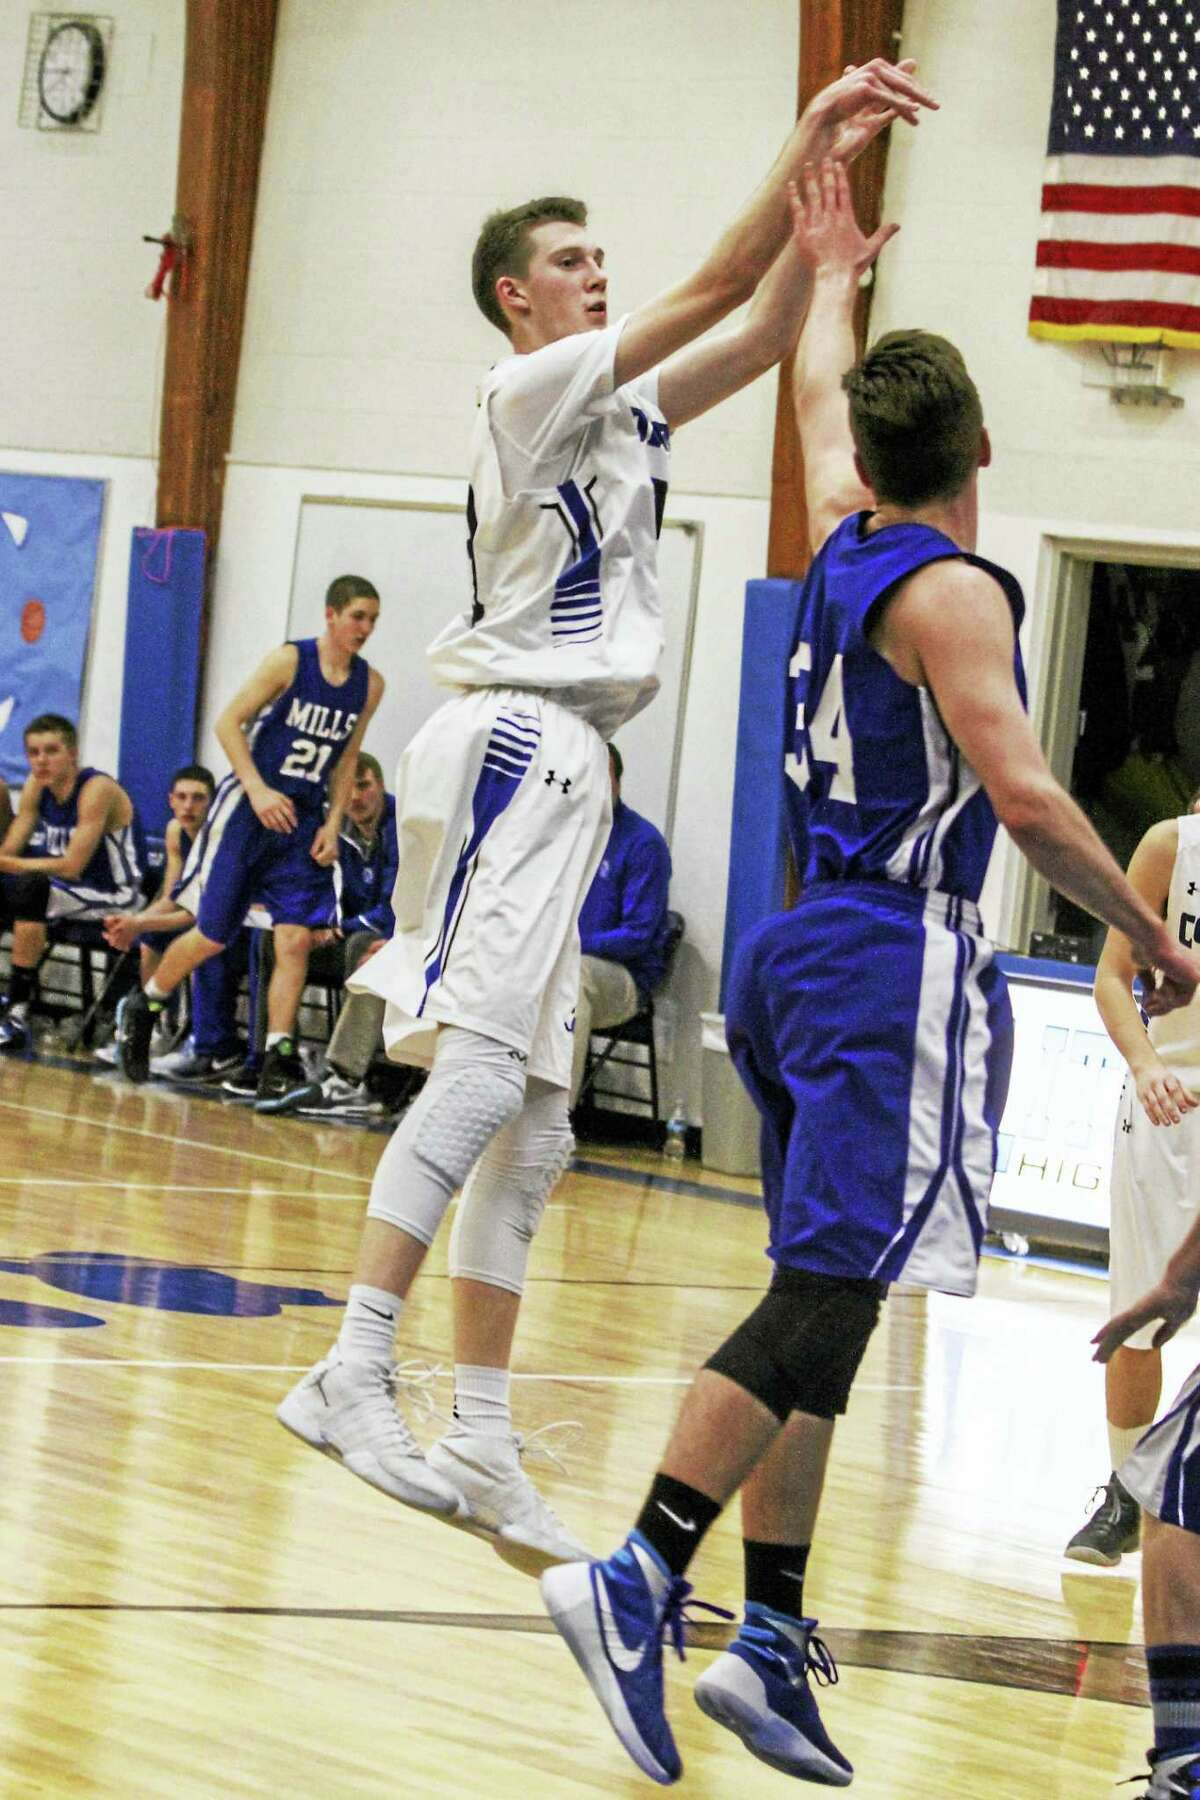 Litchfield's Ryan O'Neill scored a game-high 17 points on Wednesday.